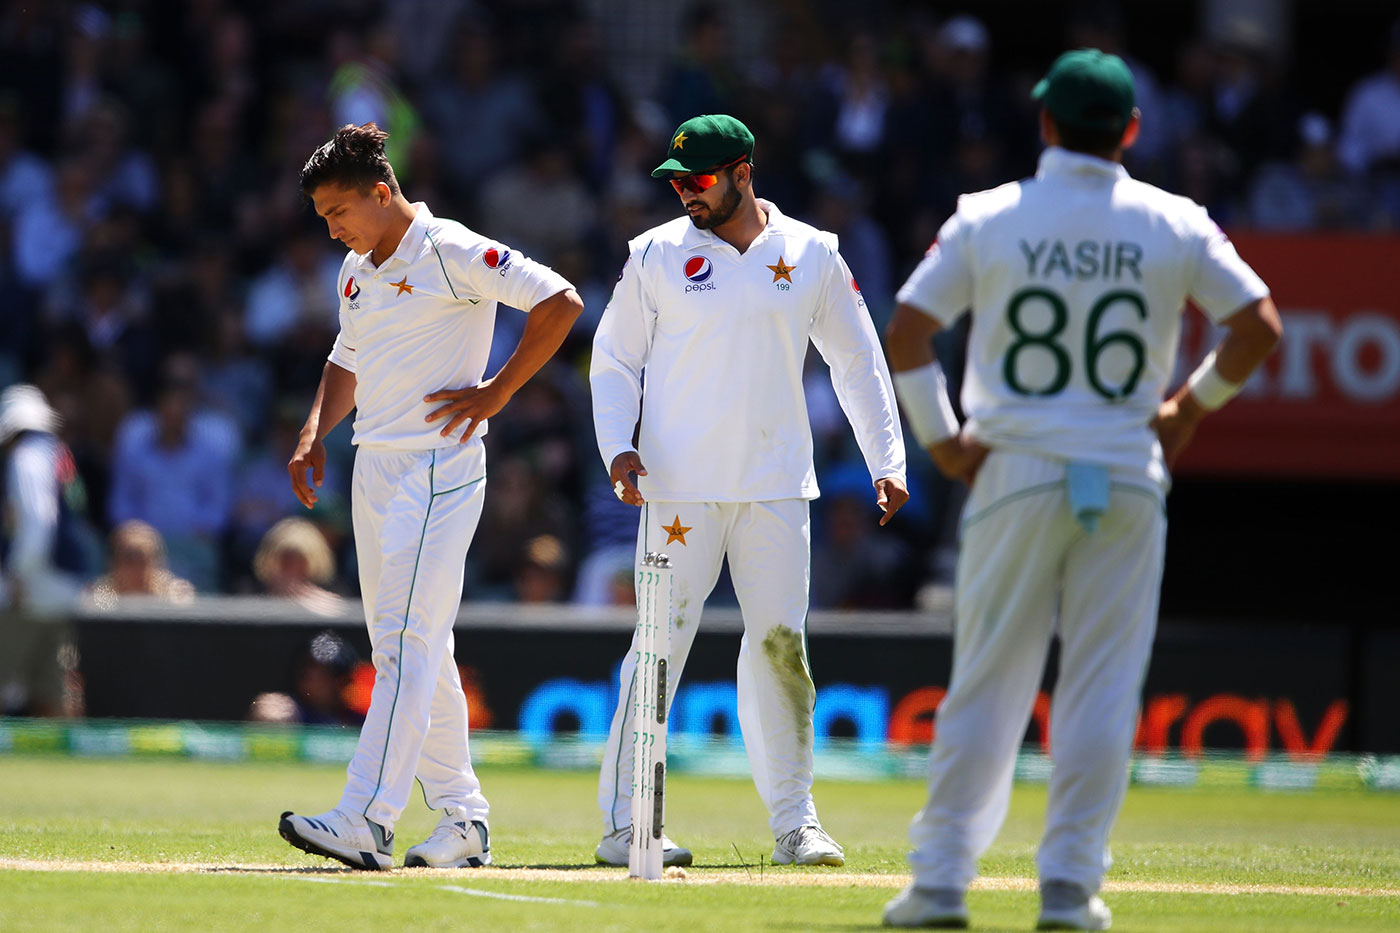 Pakistan drop to number 8 in ICC Test Rankings after losing Test series to Australia